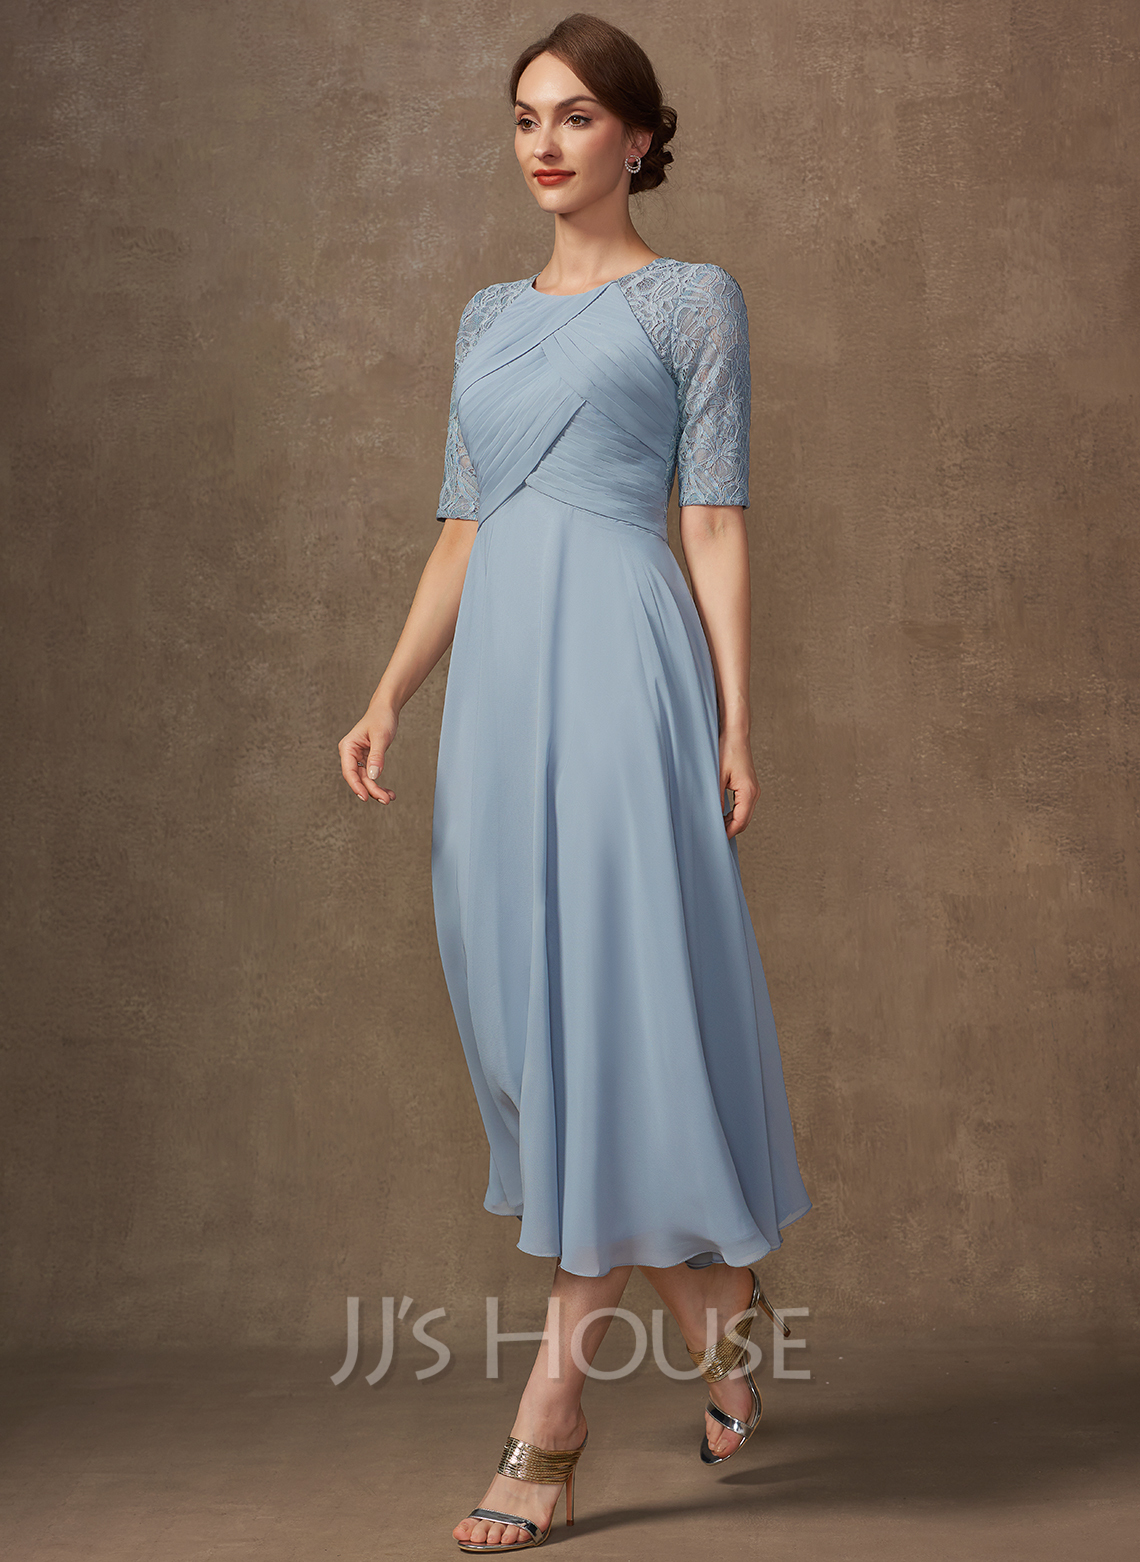 A-Line Scoop Neck Tea-Length Chiffon Lace Cocktail Dress With Ruffle